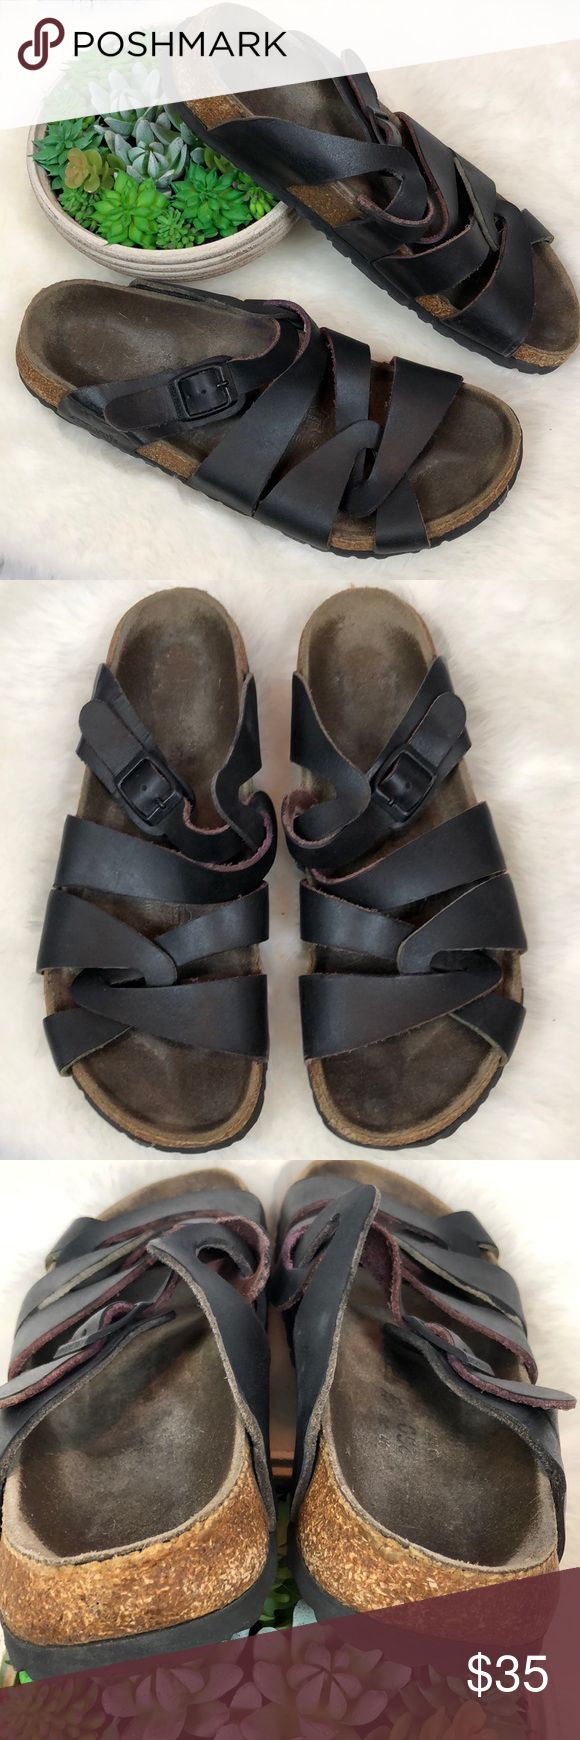 •Birkenstock• Tatami Sandals Slides Sz 40 US 9 Gorgeous Sandals!!! Birkenstock Tatami Slides US Women's Size 9. Euro 40. These are a deep cherry wood color nearly black. Have been worn as photons show but still plenty of life left as these are quality made in Germany!! Smoke free home!! Birkenstock Shoes Sandals